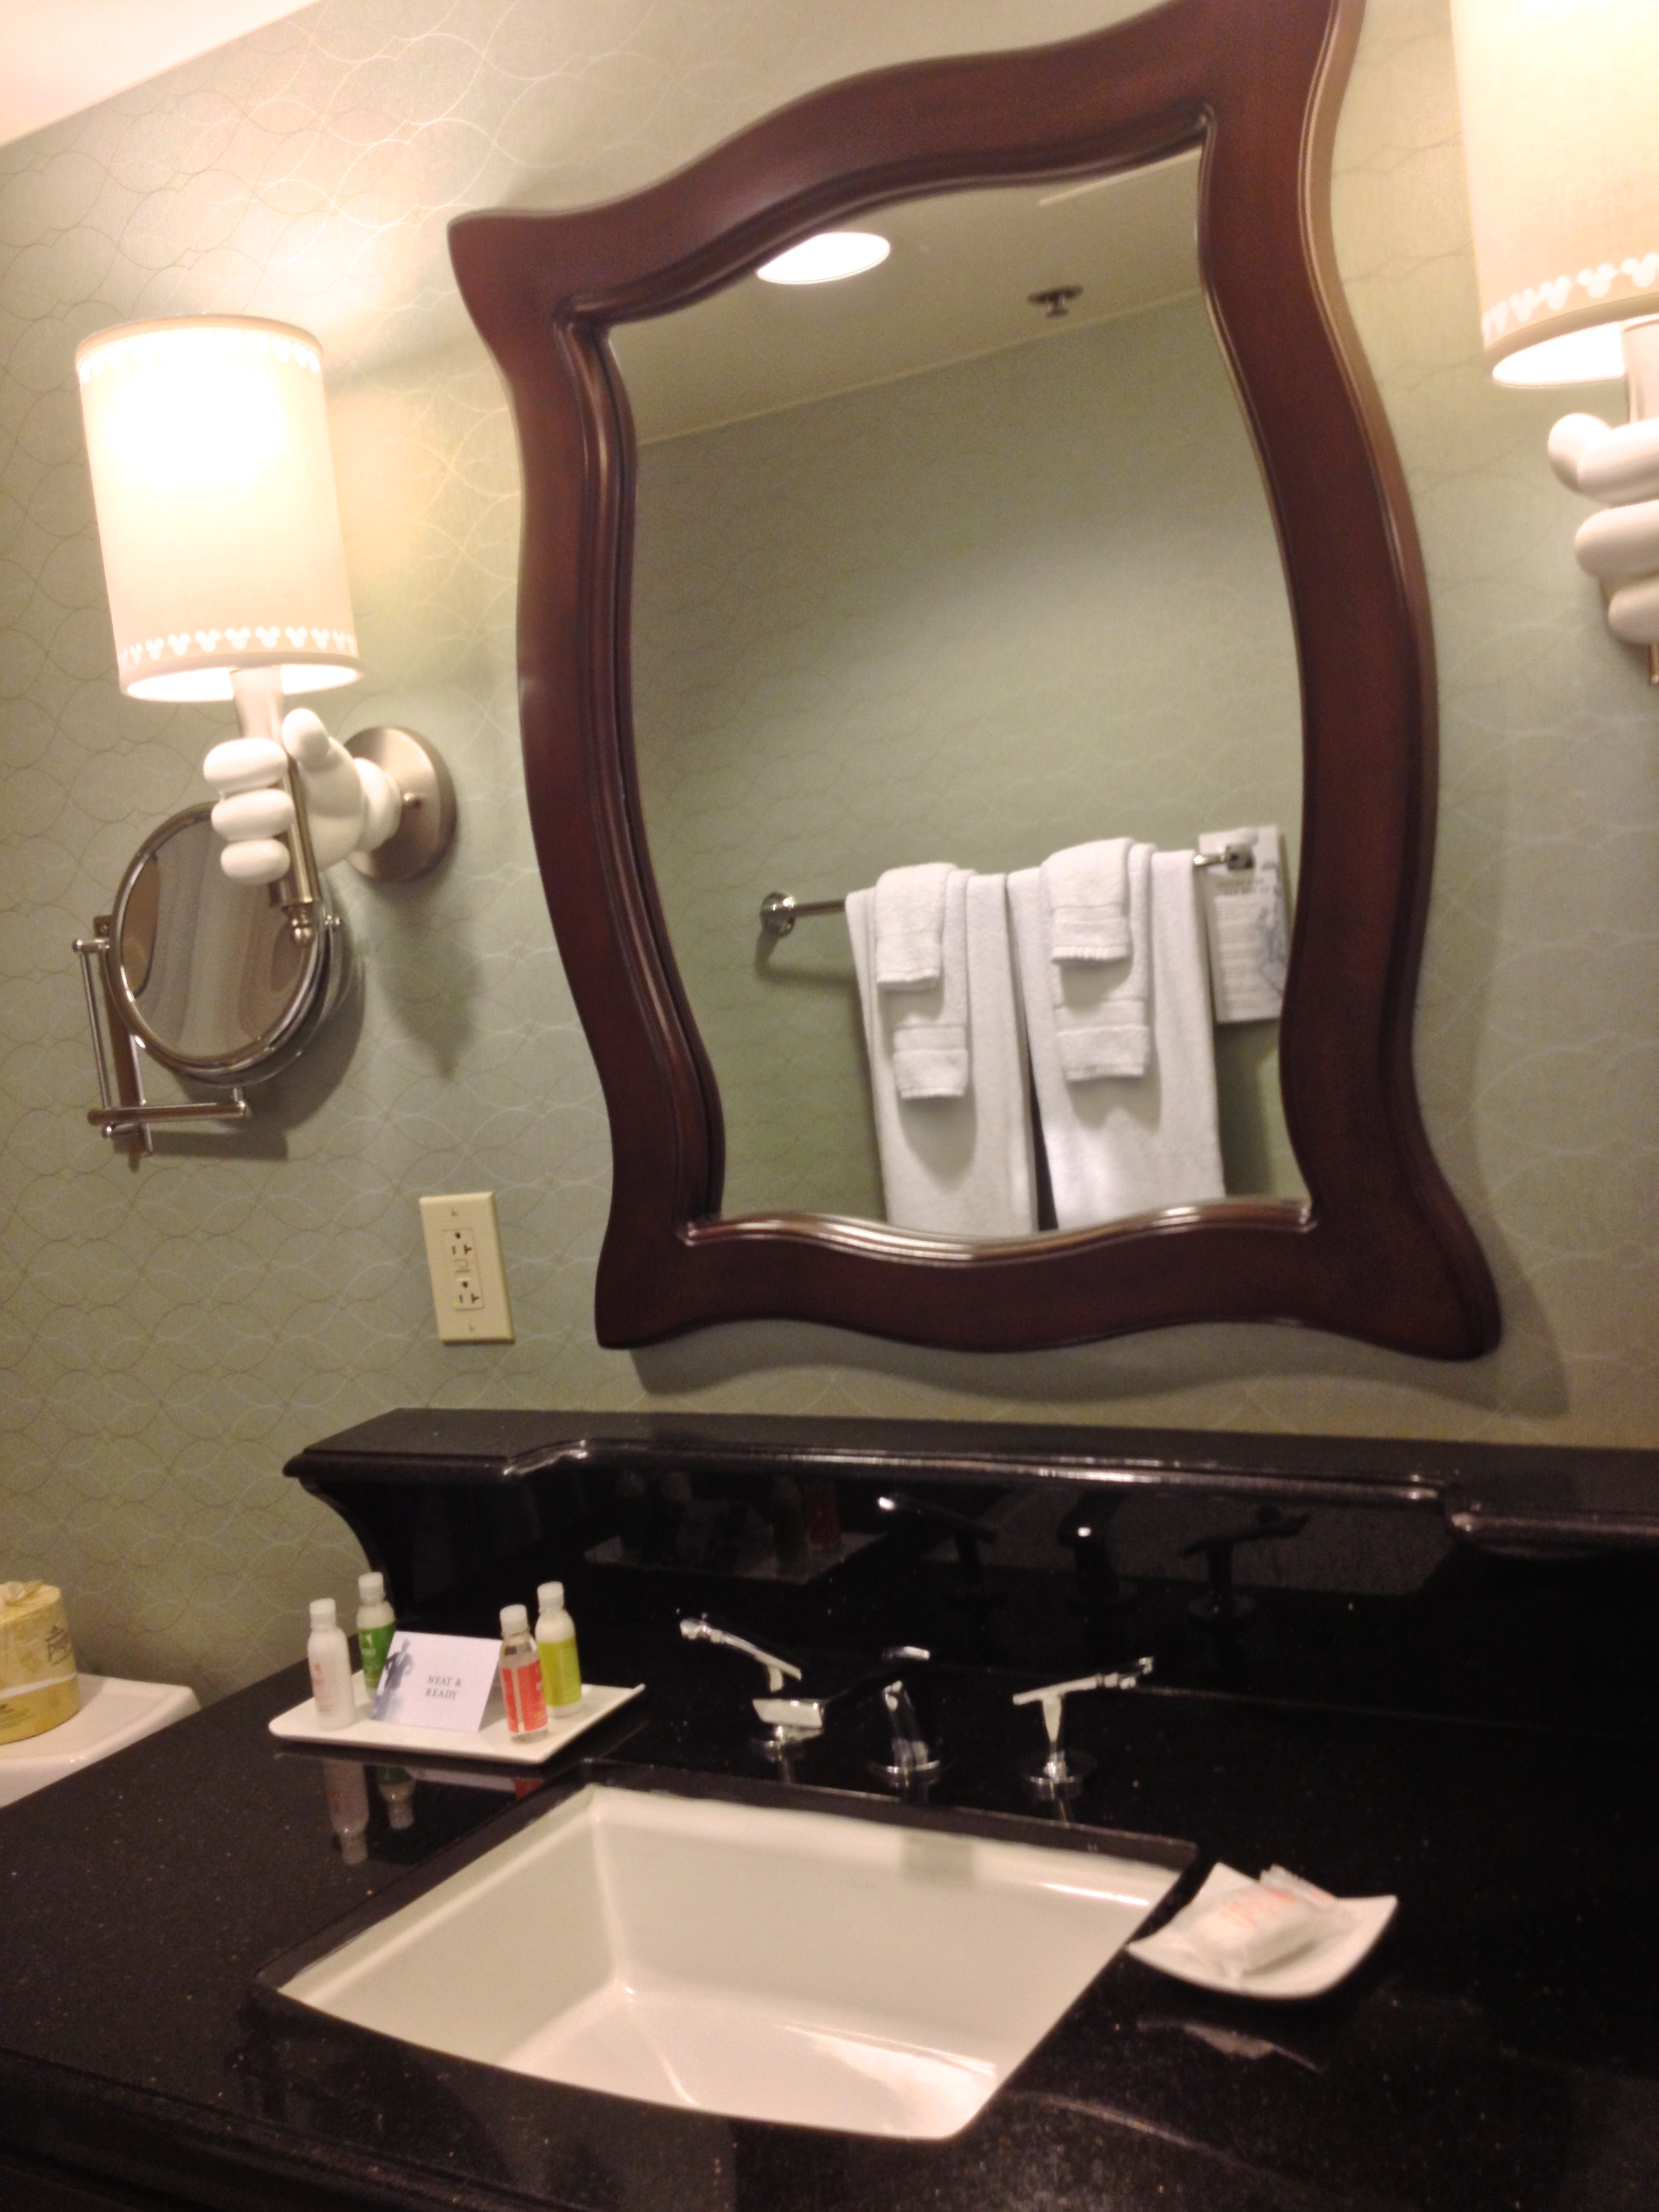 disneyland-hotel-bathroom-sink.jpg